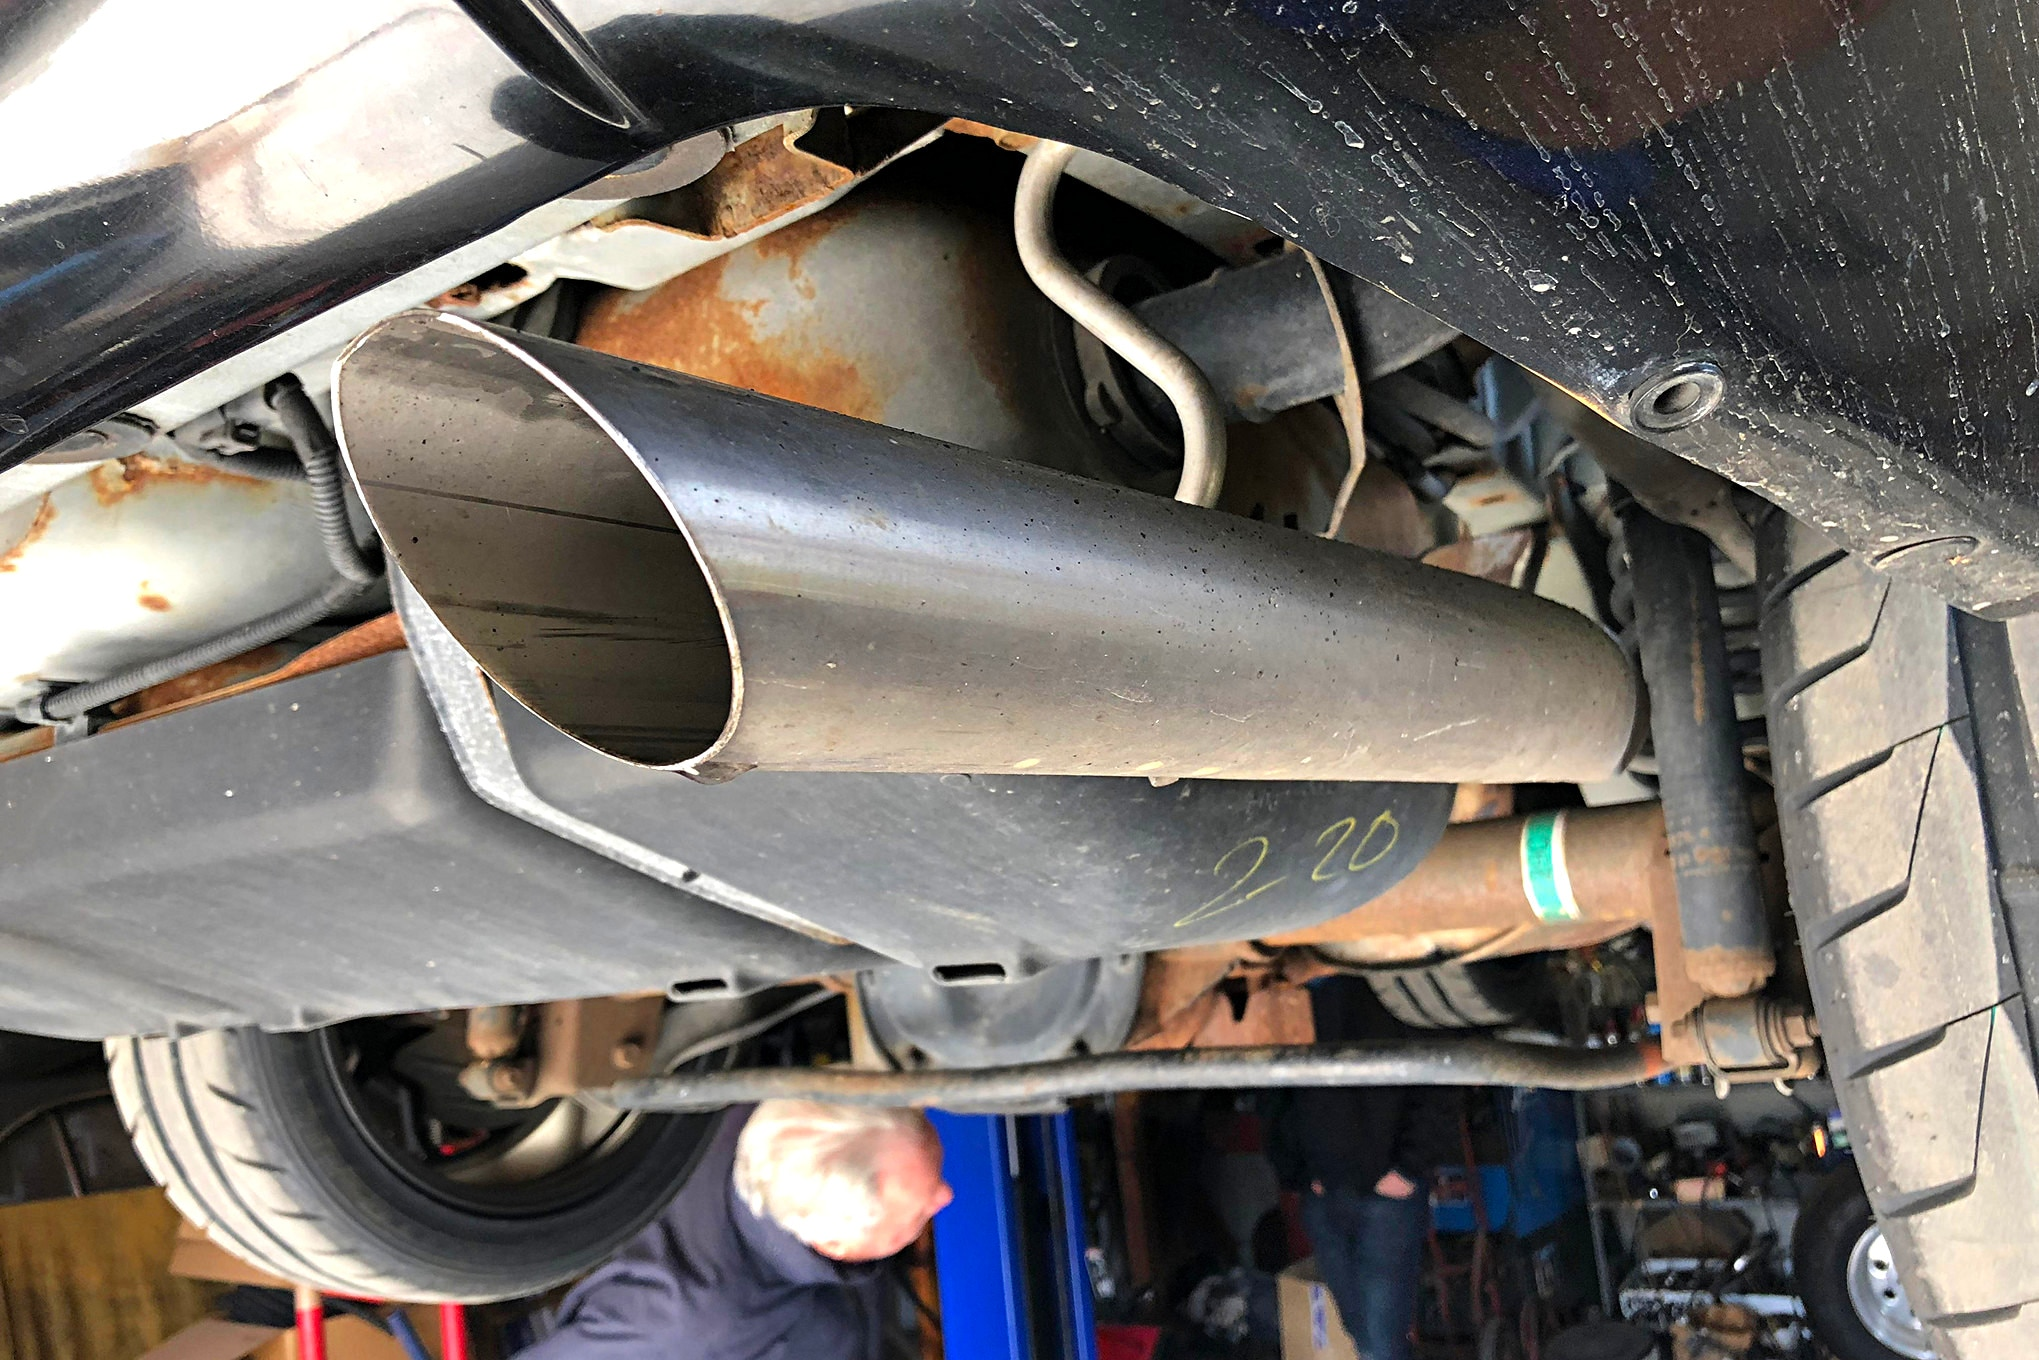 003 1997 Mustang Stock Exhaust Tip